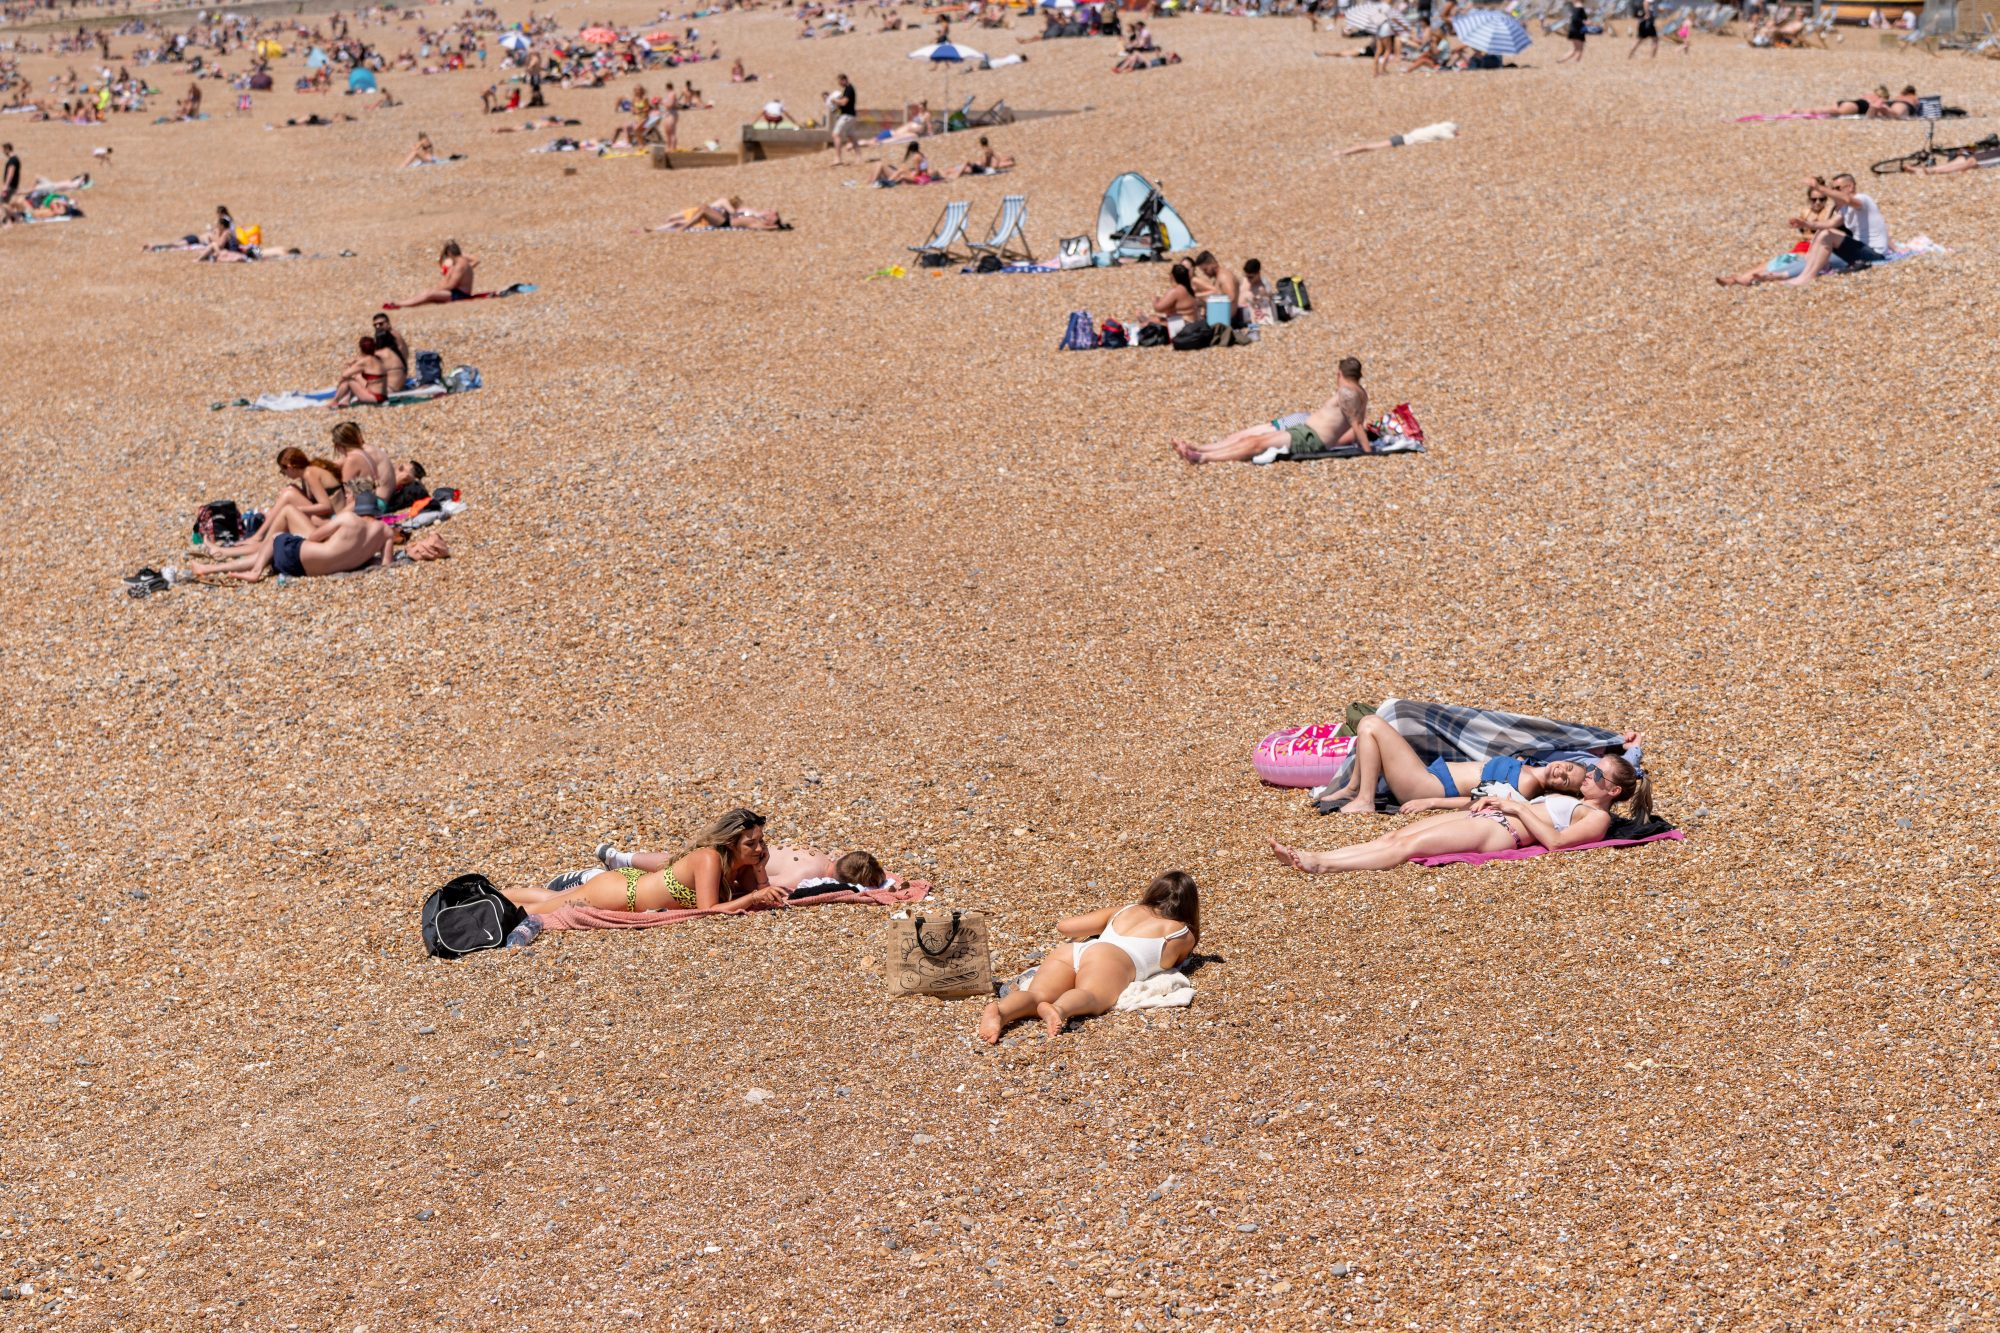 May 2020 sunniest month on record - channel 4